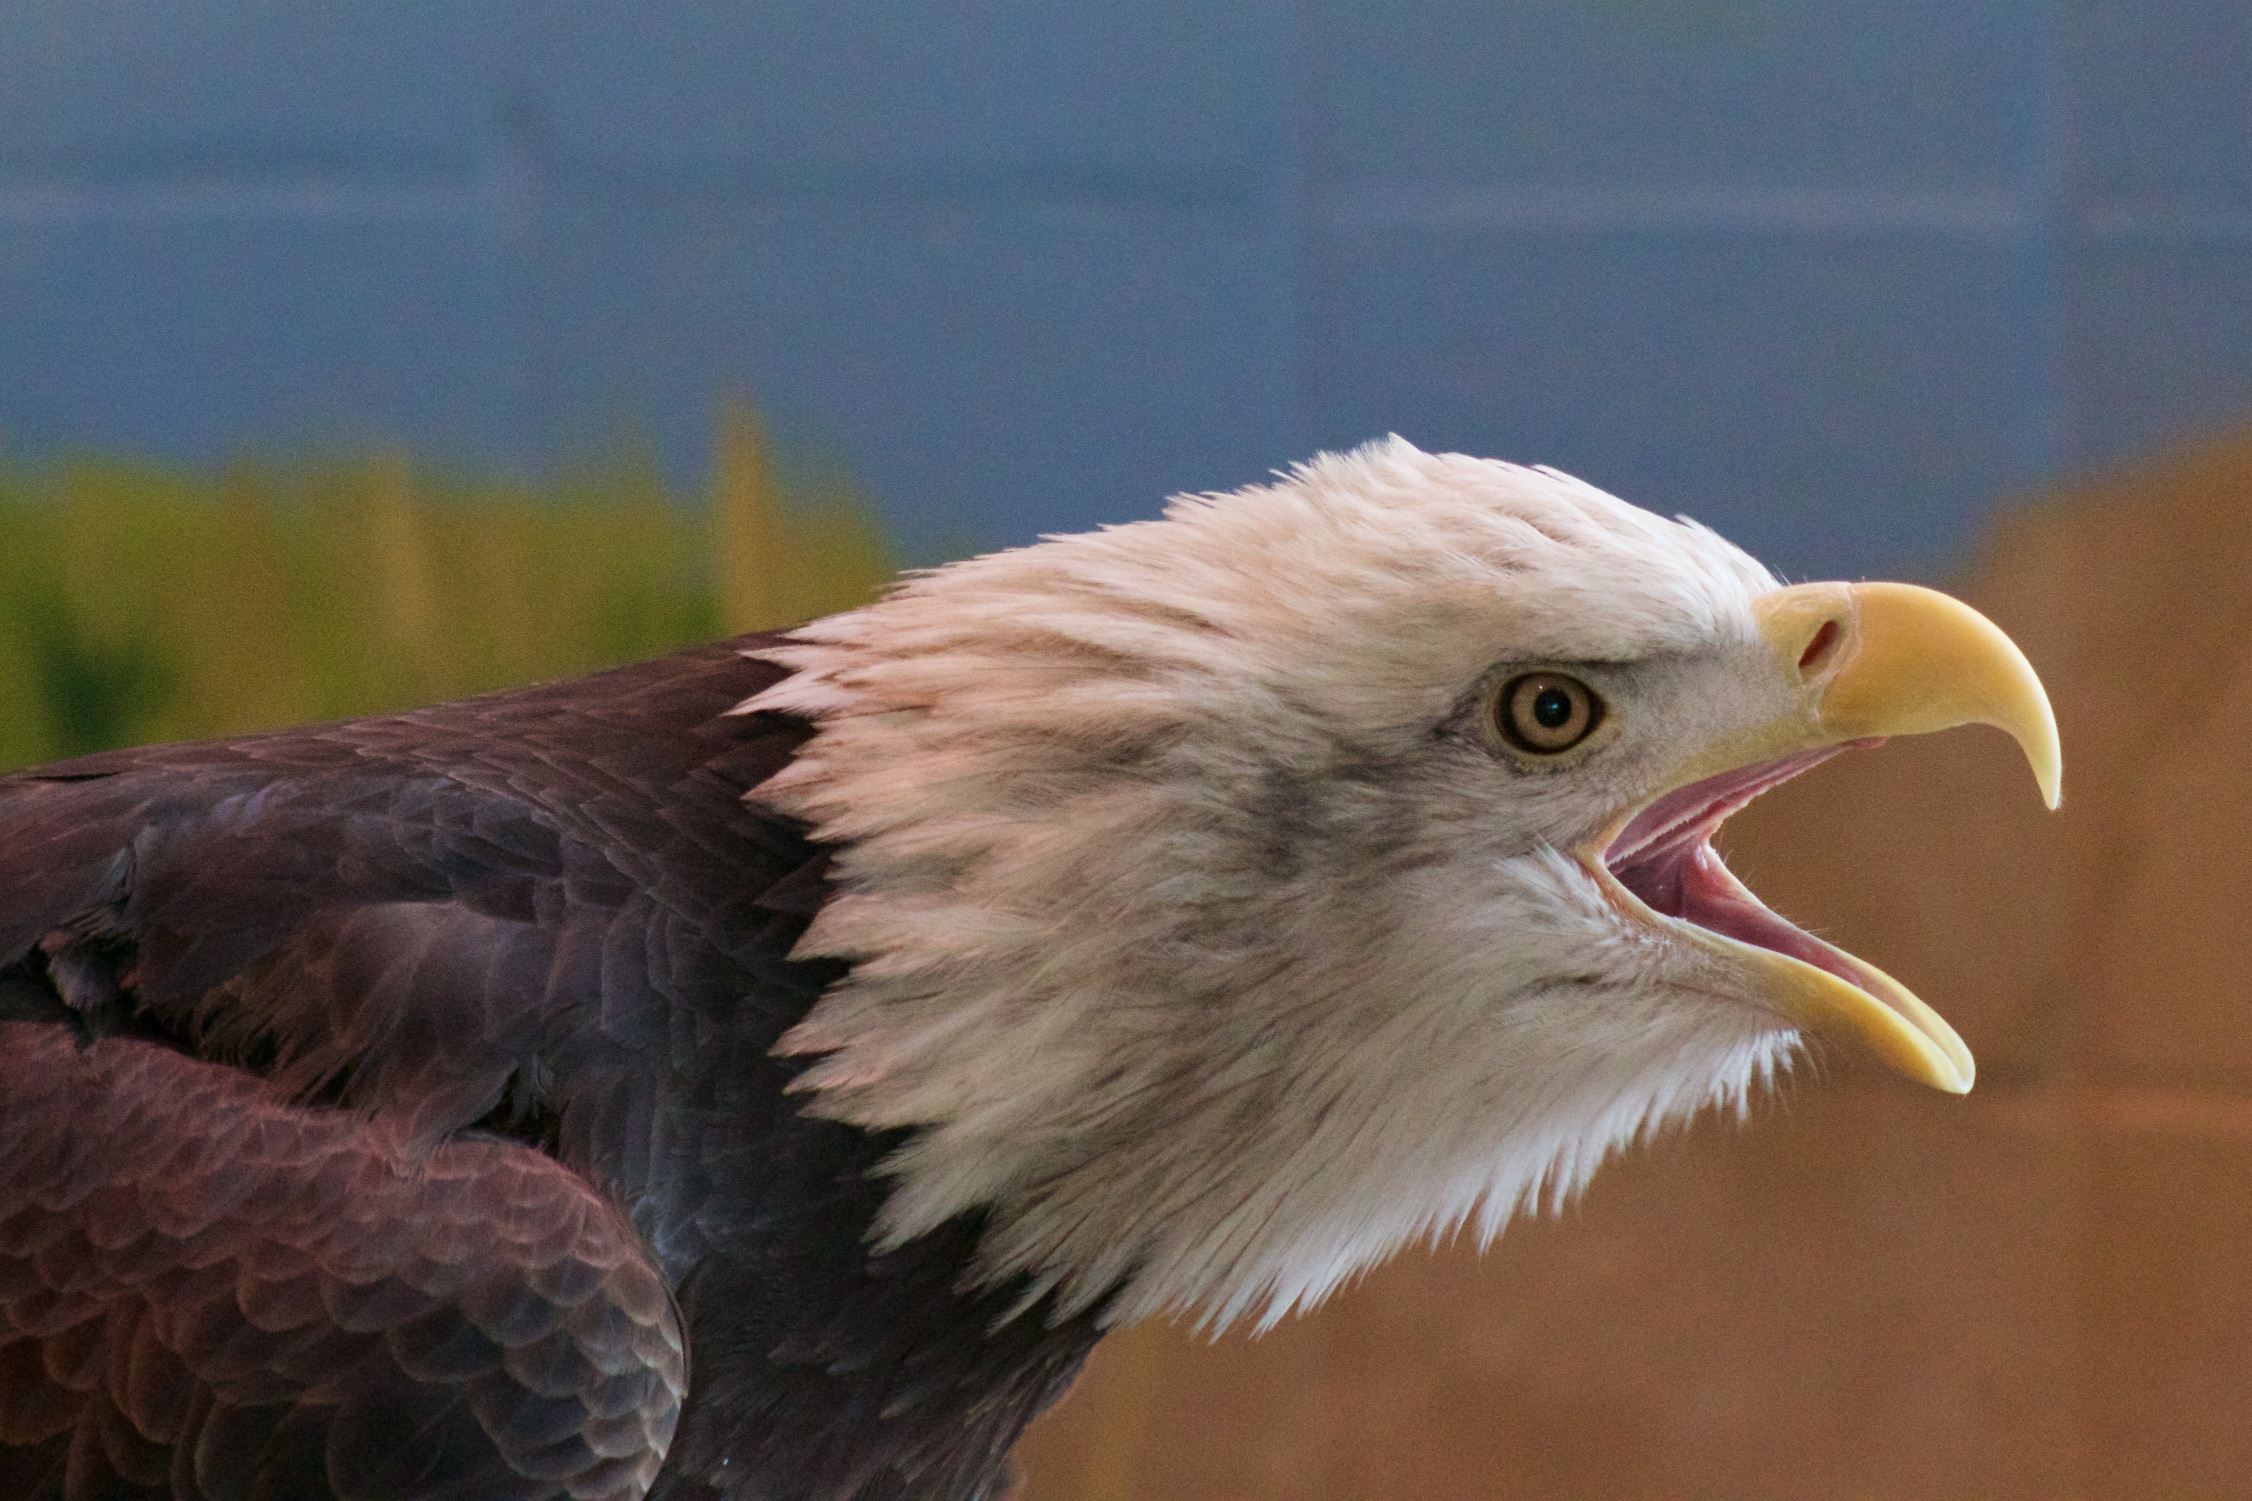 Screaming eagle in front of green and blue wall.